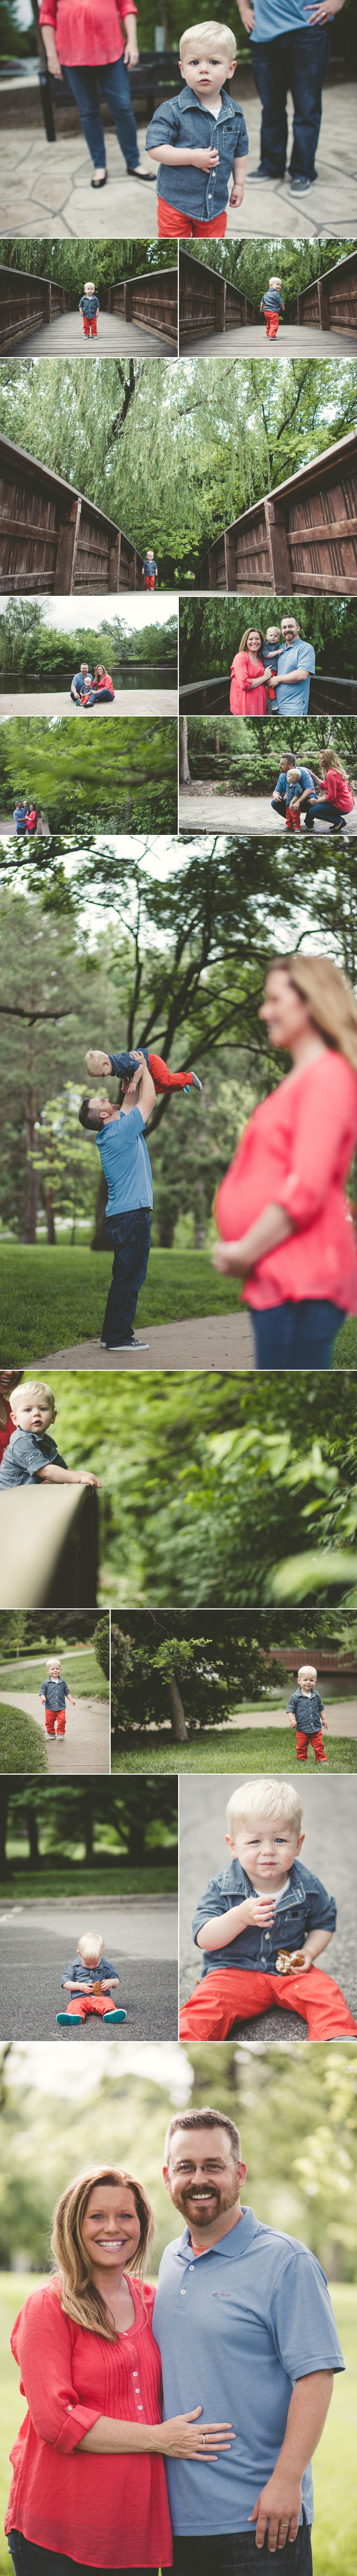 jason_domingues_photography_loose_park_family_sessions_kansas_city_mo_ks_jason_domingues_photography_0002